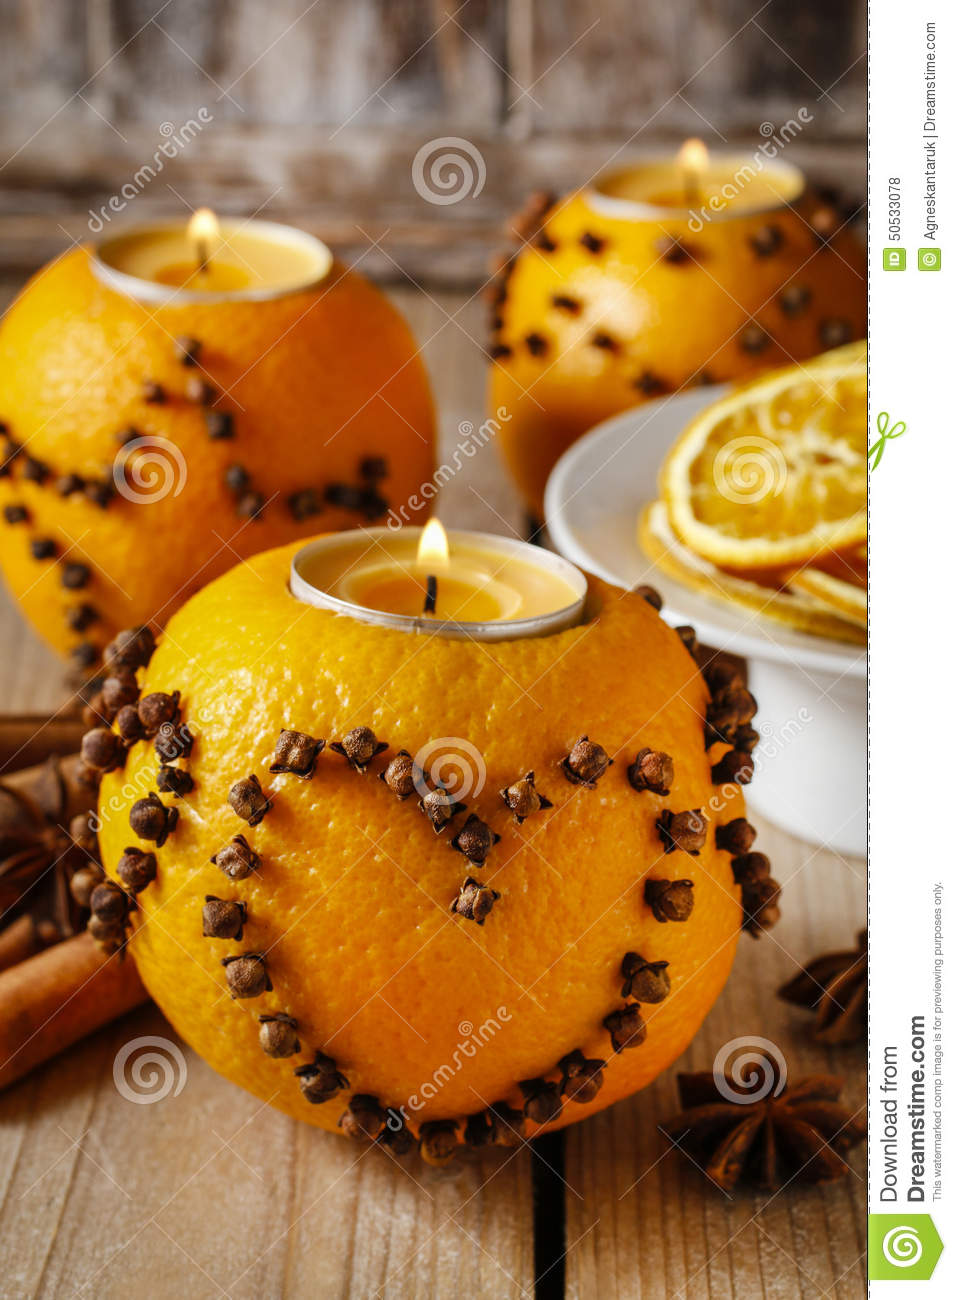 boule orange de sachet aromatique avec la bougie d cor e des clous de girofle au coeur photo. Black Bedroom Furniture Sets. Home Design Ideas